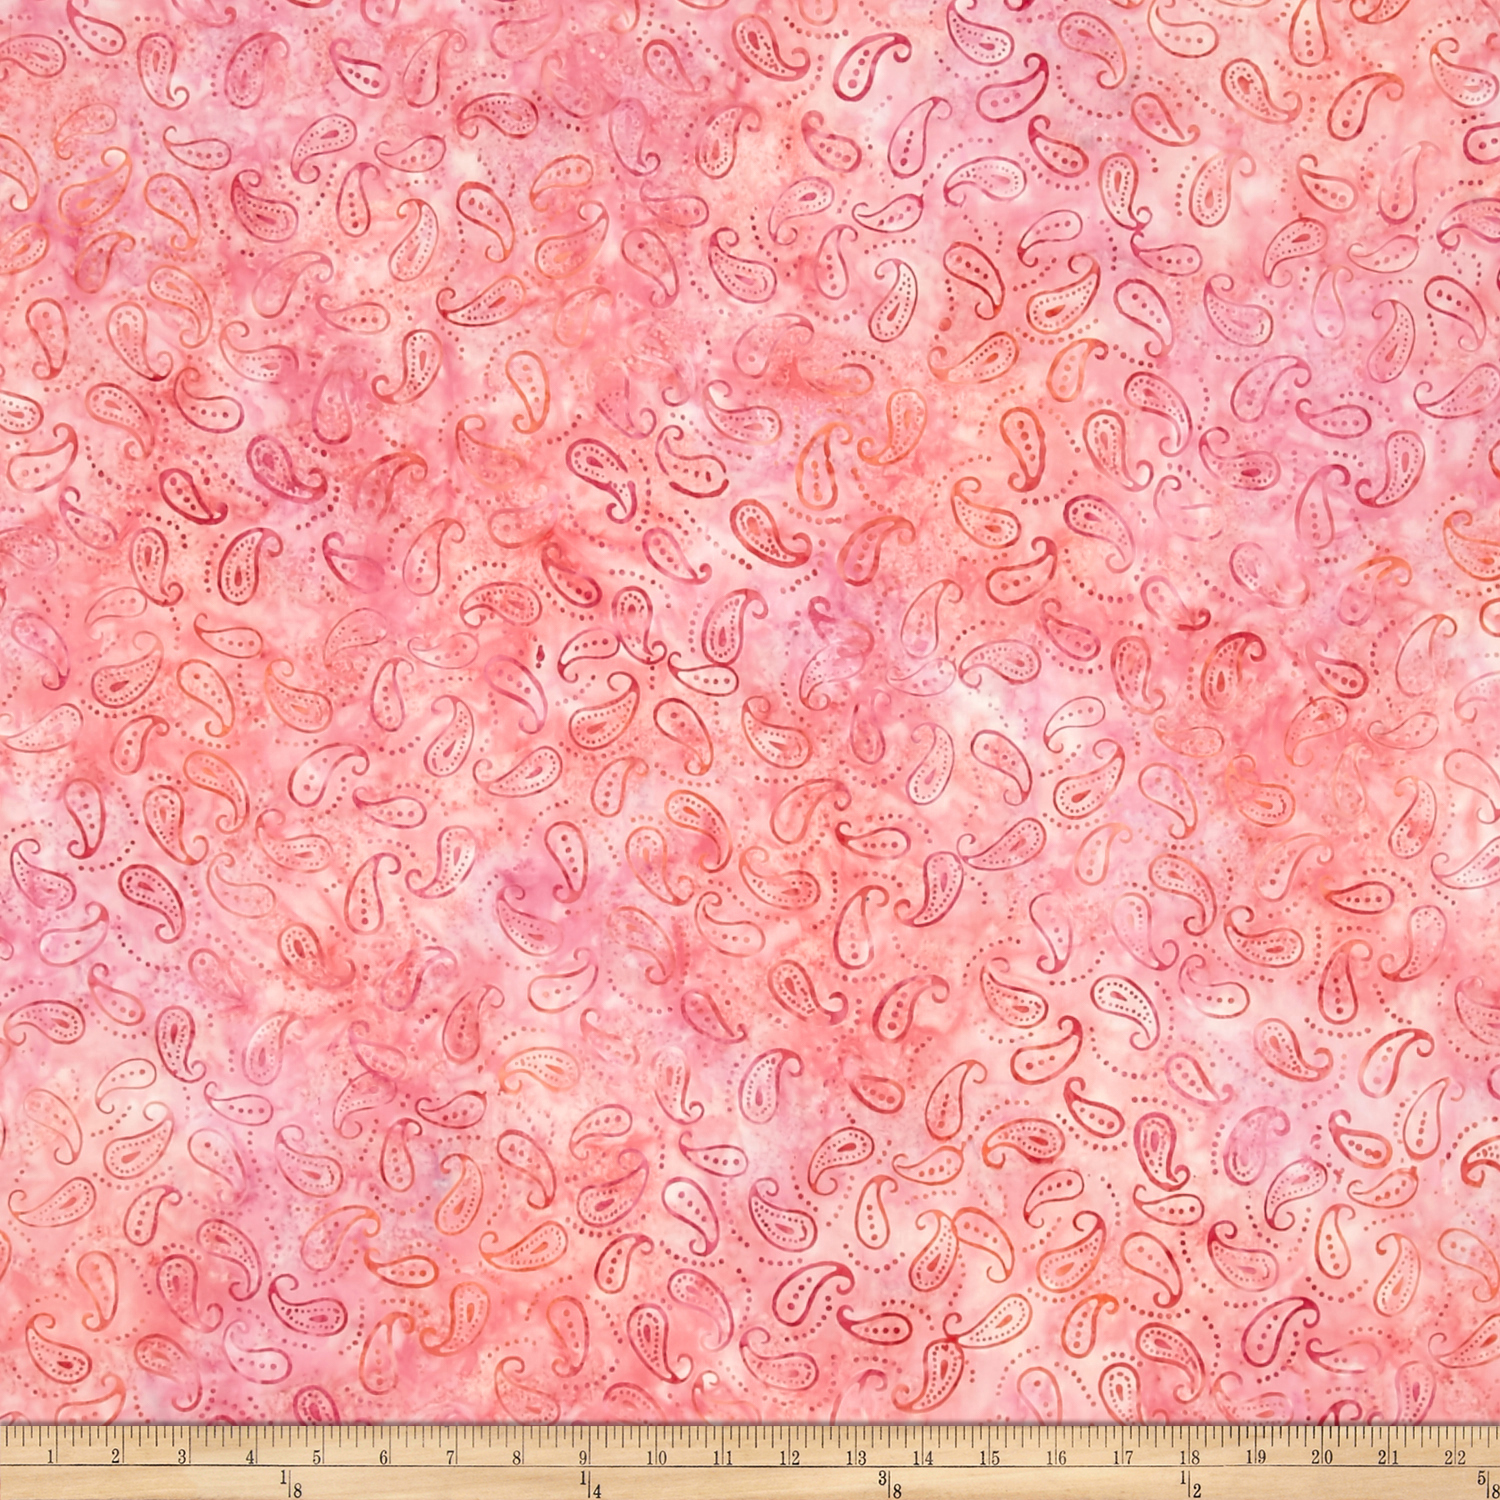 Wilmington Batiks Mini Paisley Pink Fabric by MM Fab in USA